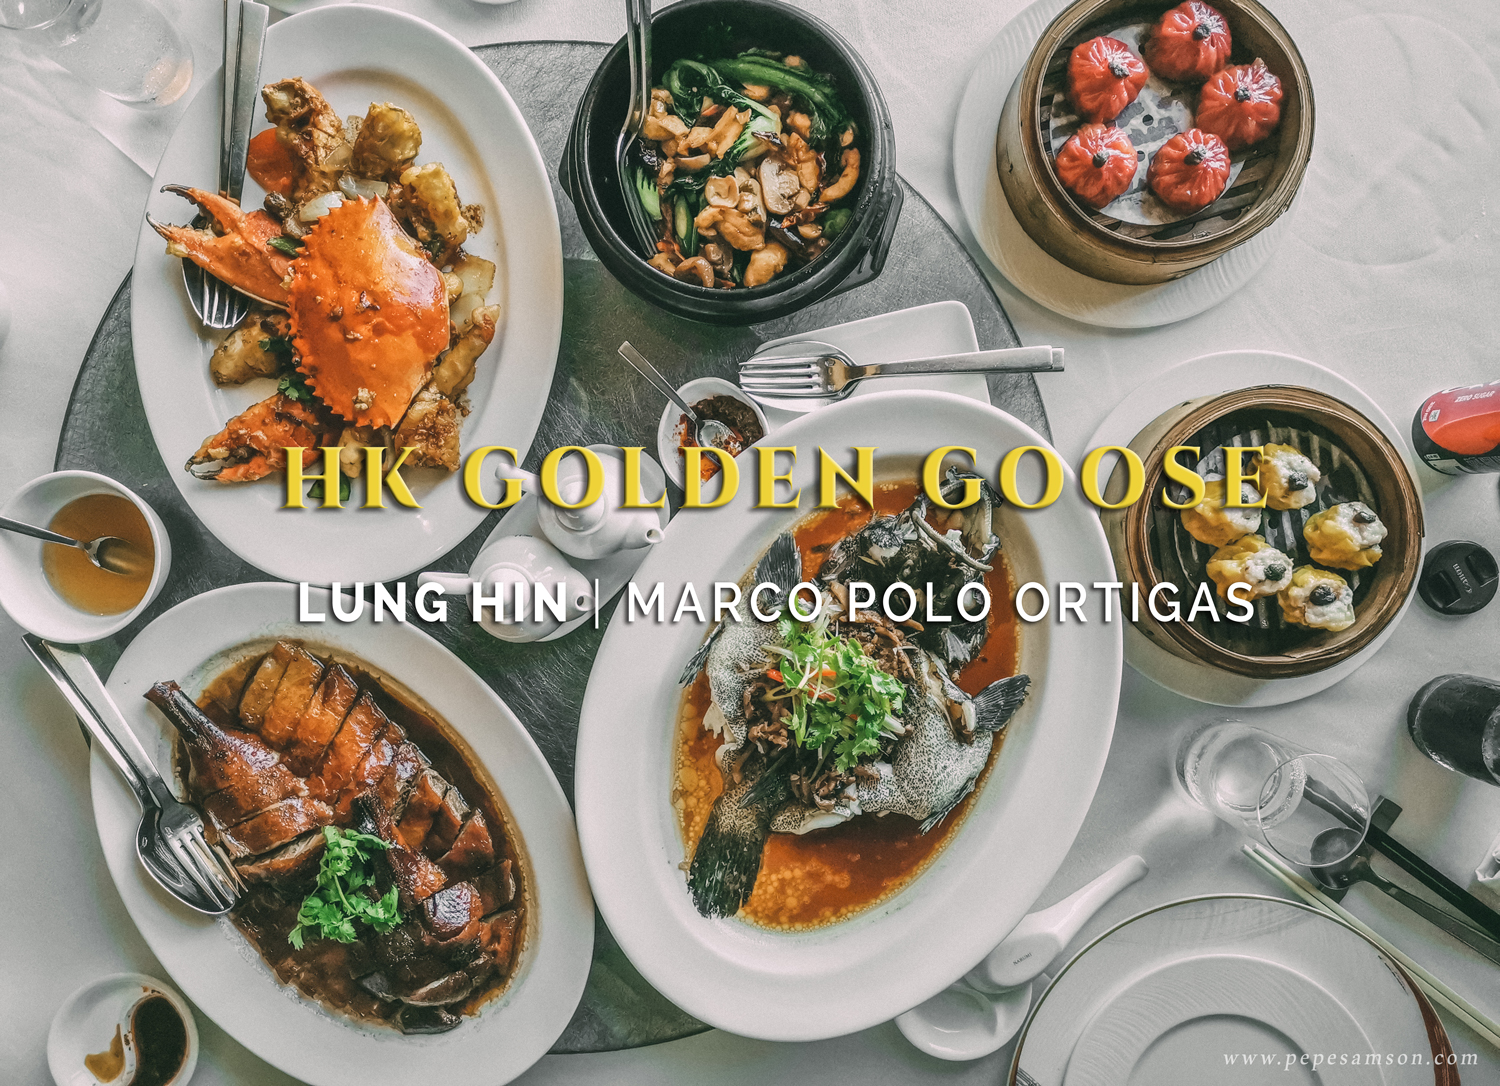 The Hong Kong Golden Goose Returns to Lung Hin, Marco Polo Ortigas